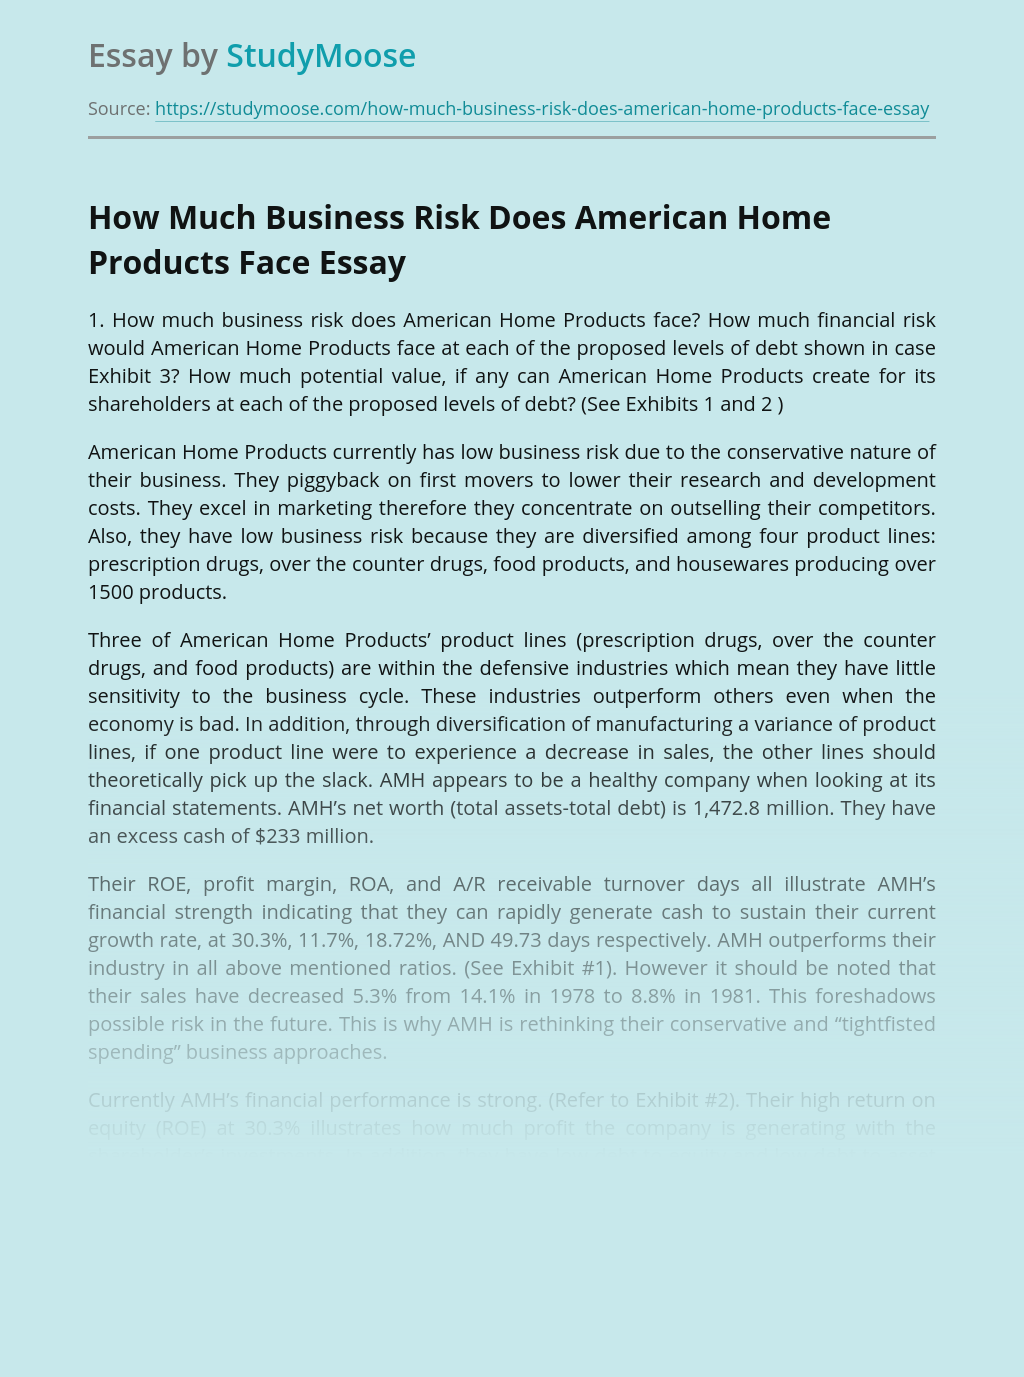 How Much Business Risk Does American Home Products Face